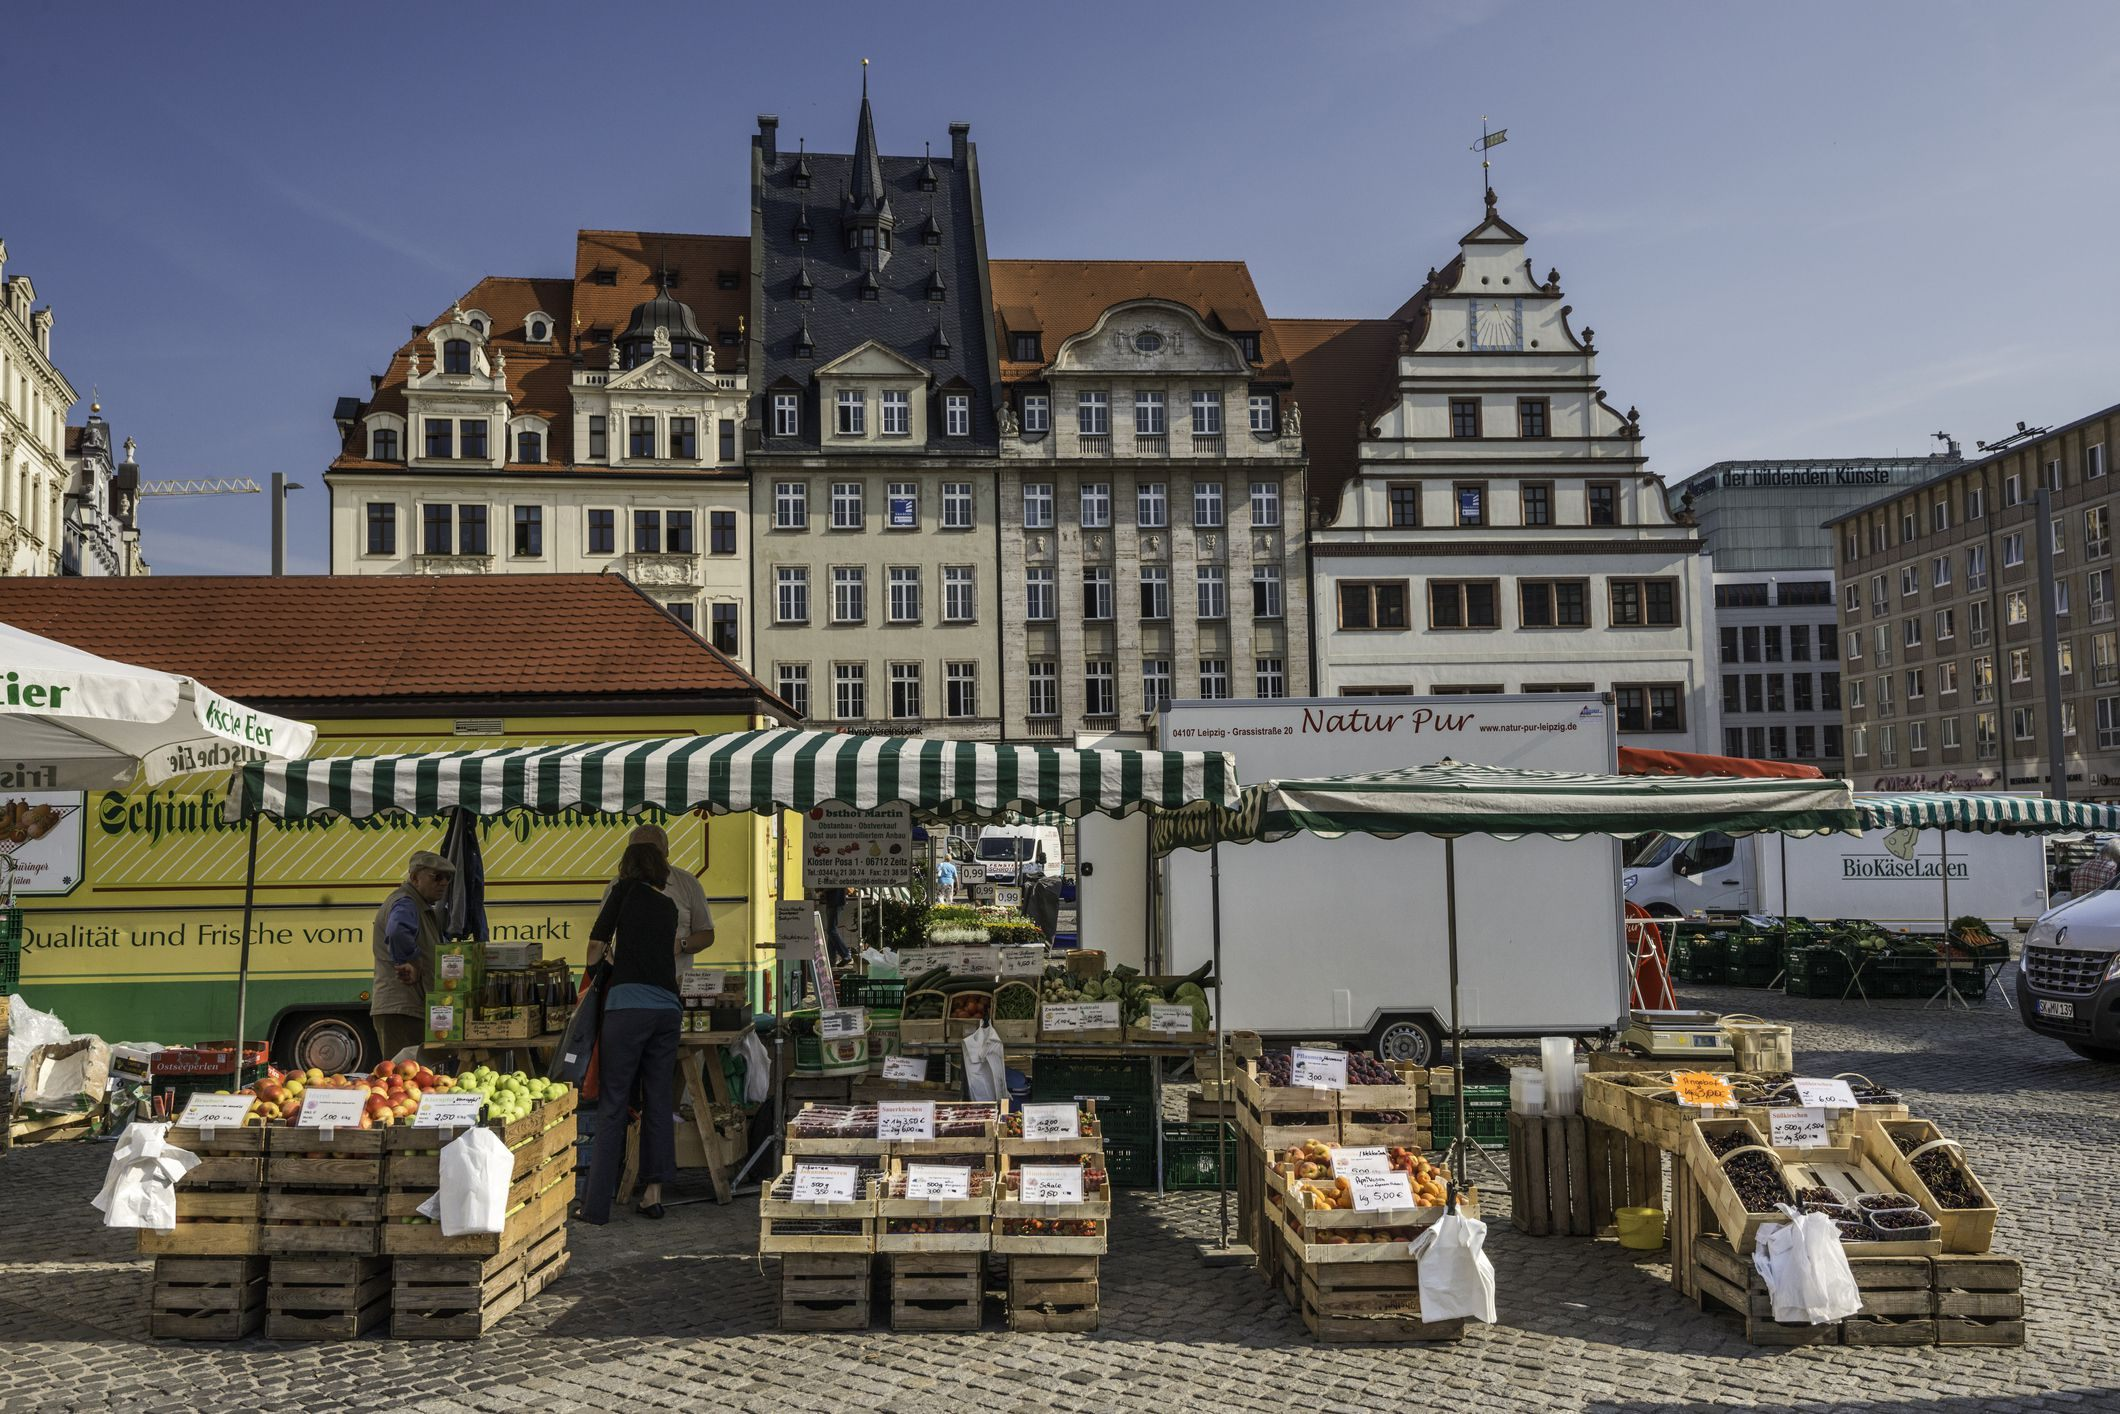 Lit 2 Places Moderne De Luxe the 10 Best Cities to Visit In Germany